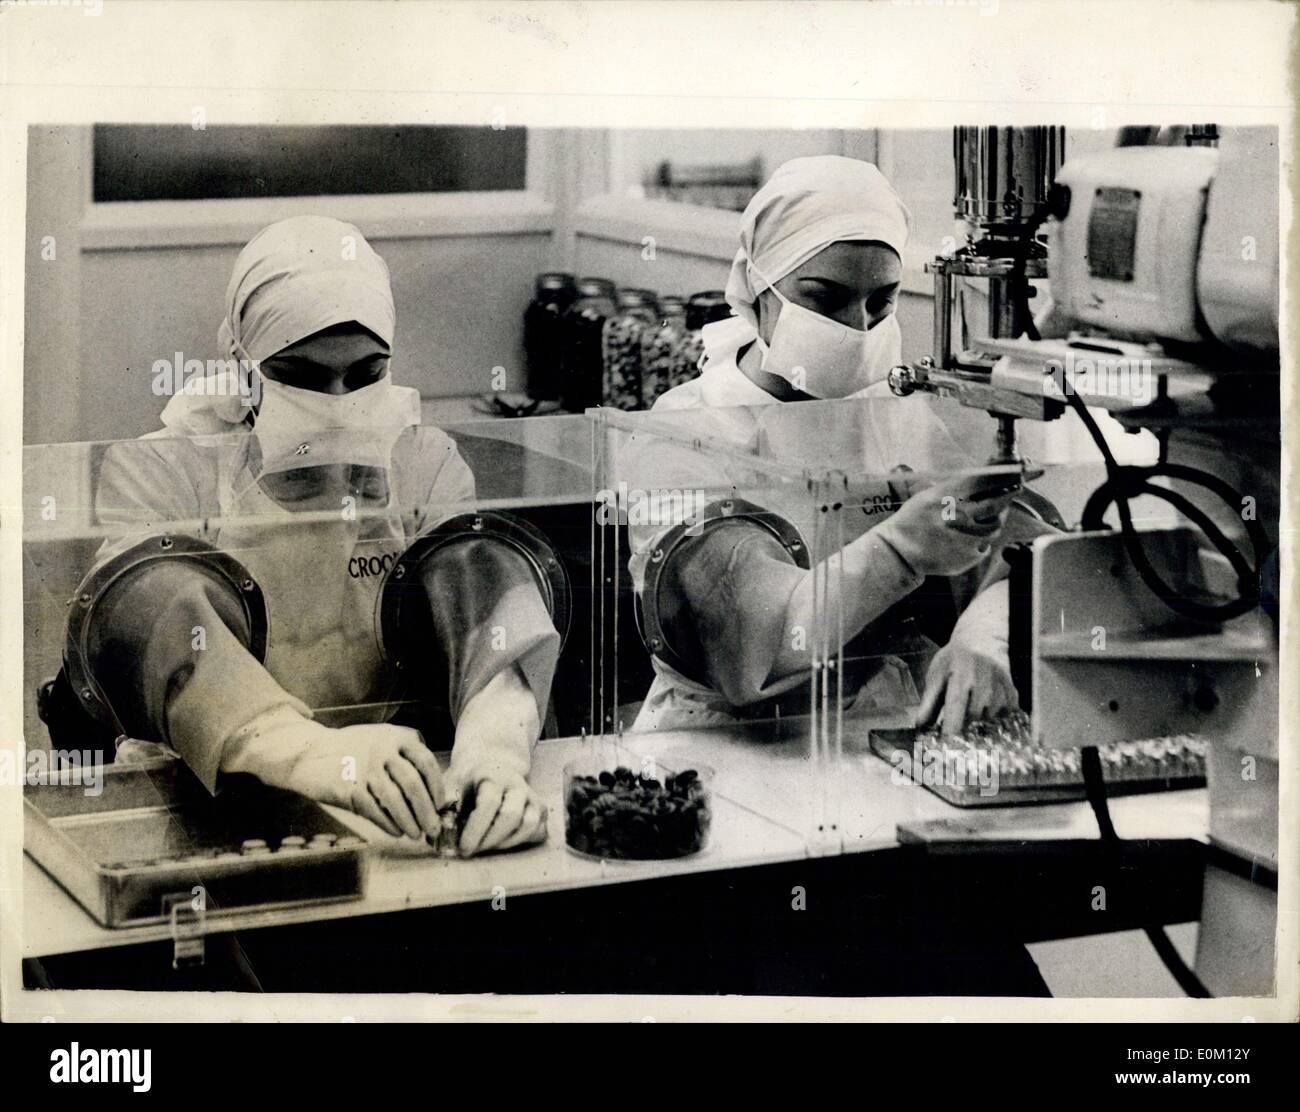 Feb. 19, 1953 - New Laboratory Opened: Mr. H.R. Mackeson, M.P. - the Overseas Secretary, yesterday performed the opening ceremony of the new Crookes Laboratories, at Park Royal. Mr. Mackeson had to don specially sterilised clothes - shoes - gloves and mask before entering one of the new pressurised aseptic ampoule filling rooms, where the air is filtered - to watch girls at work. The young ladies employed in this room have to be ''A.L.'' in health before they are allowed to work there. Photo Shows The Forbidden Room - Girls seen filling bottles with A.C.T.H - Stock Image